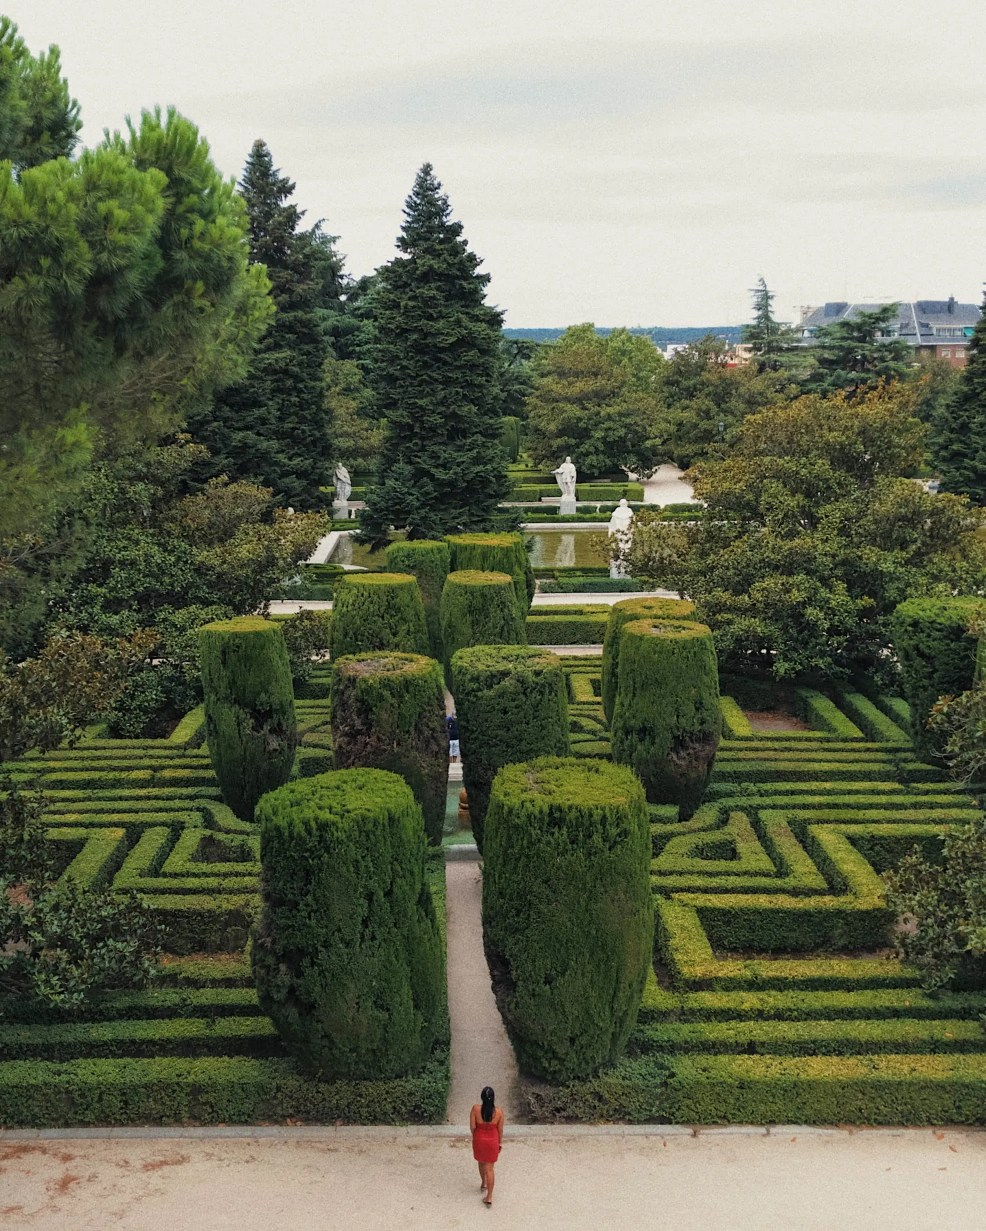 Instagrammable places in Spain, Madrid, Jardines de Sabatini, Sabatini Gardens